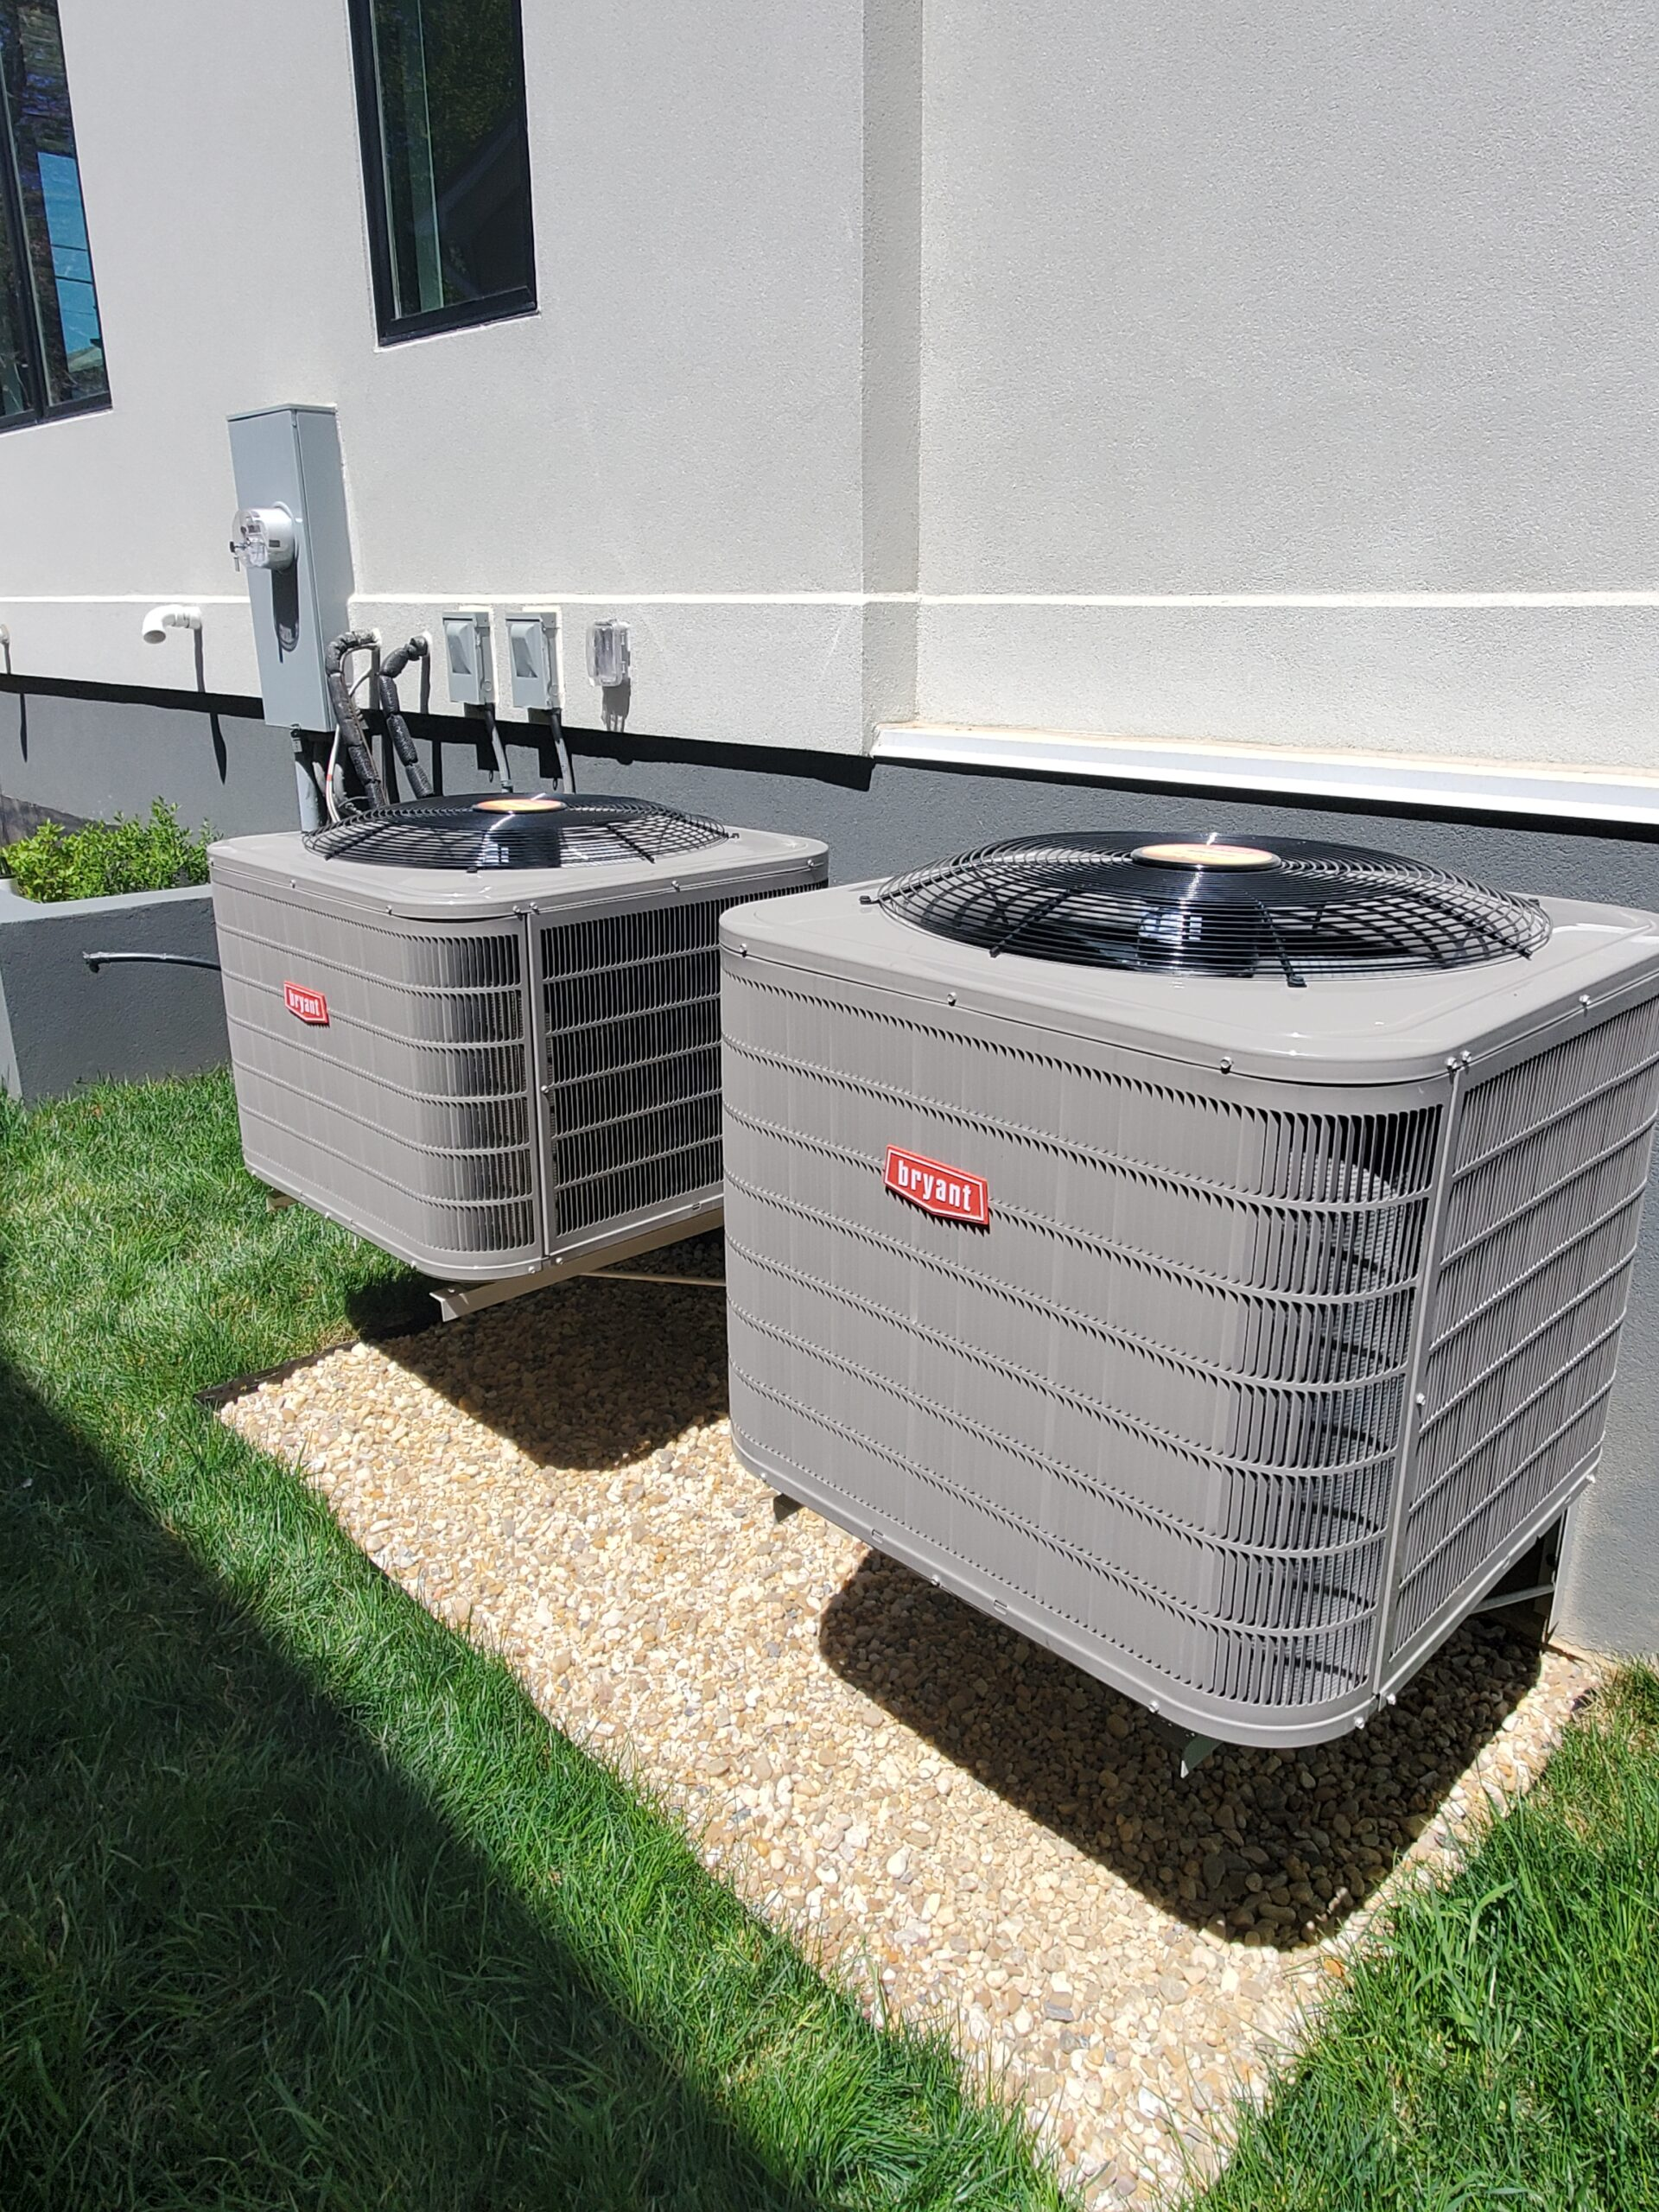 hvac units attached to a home